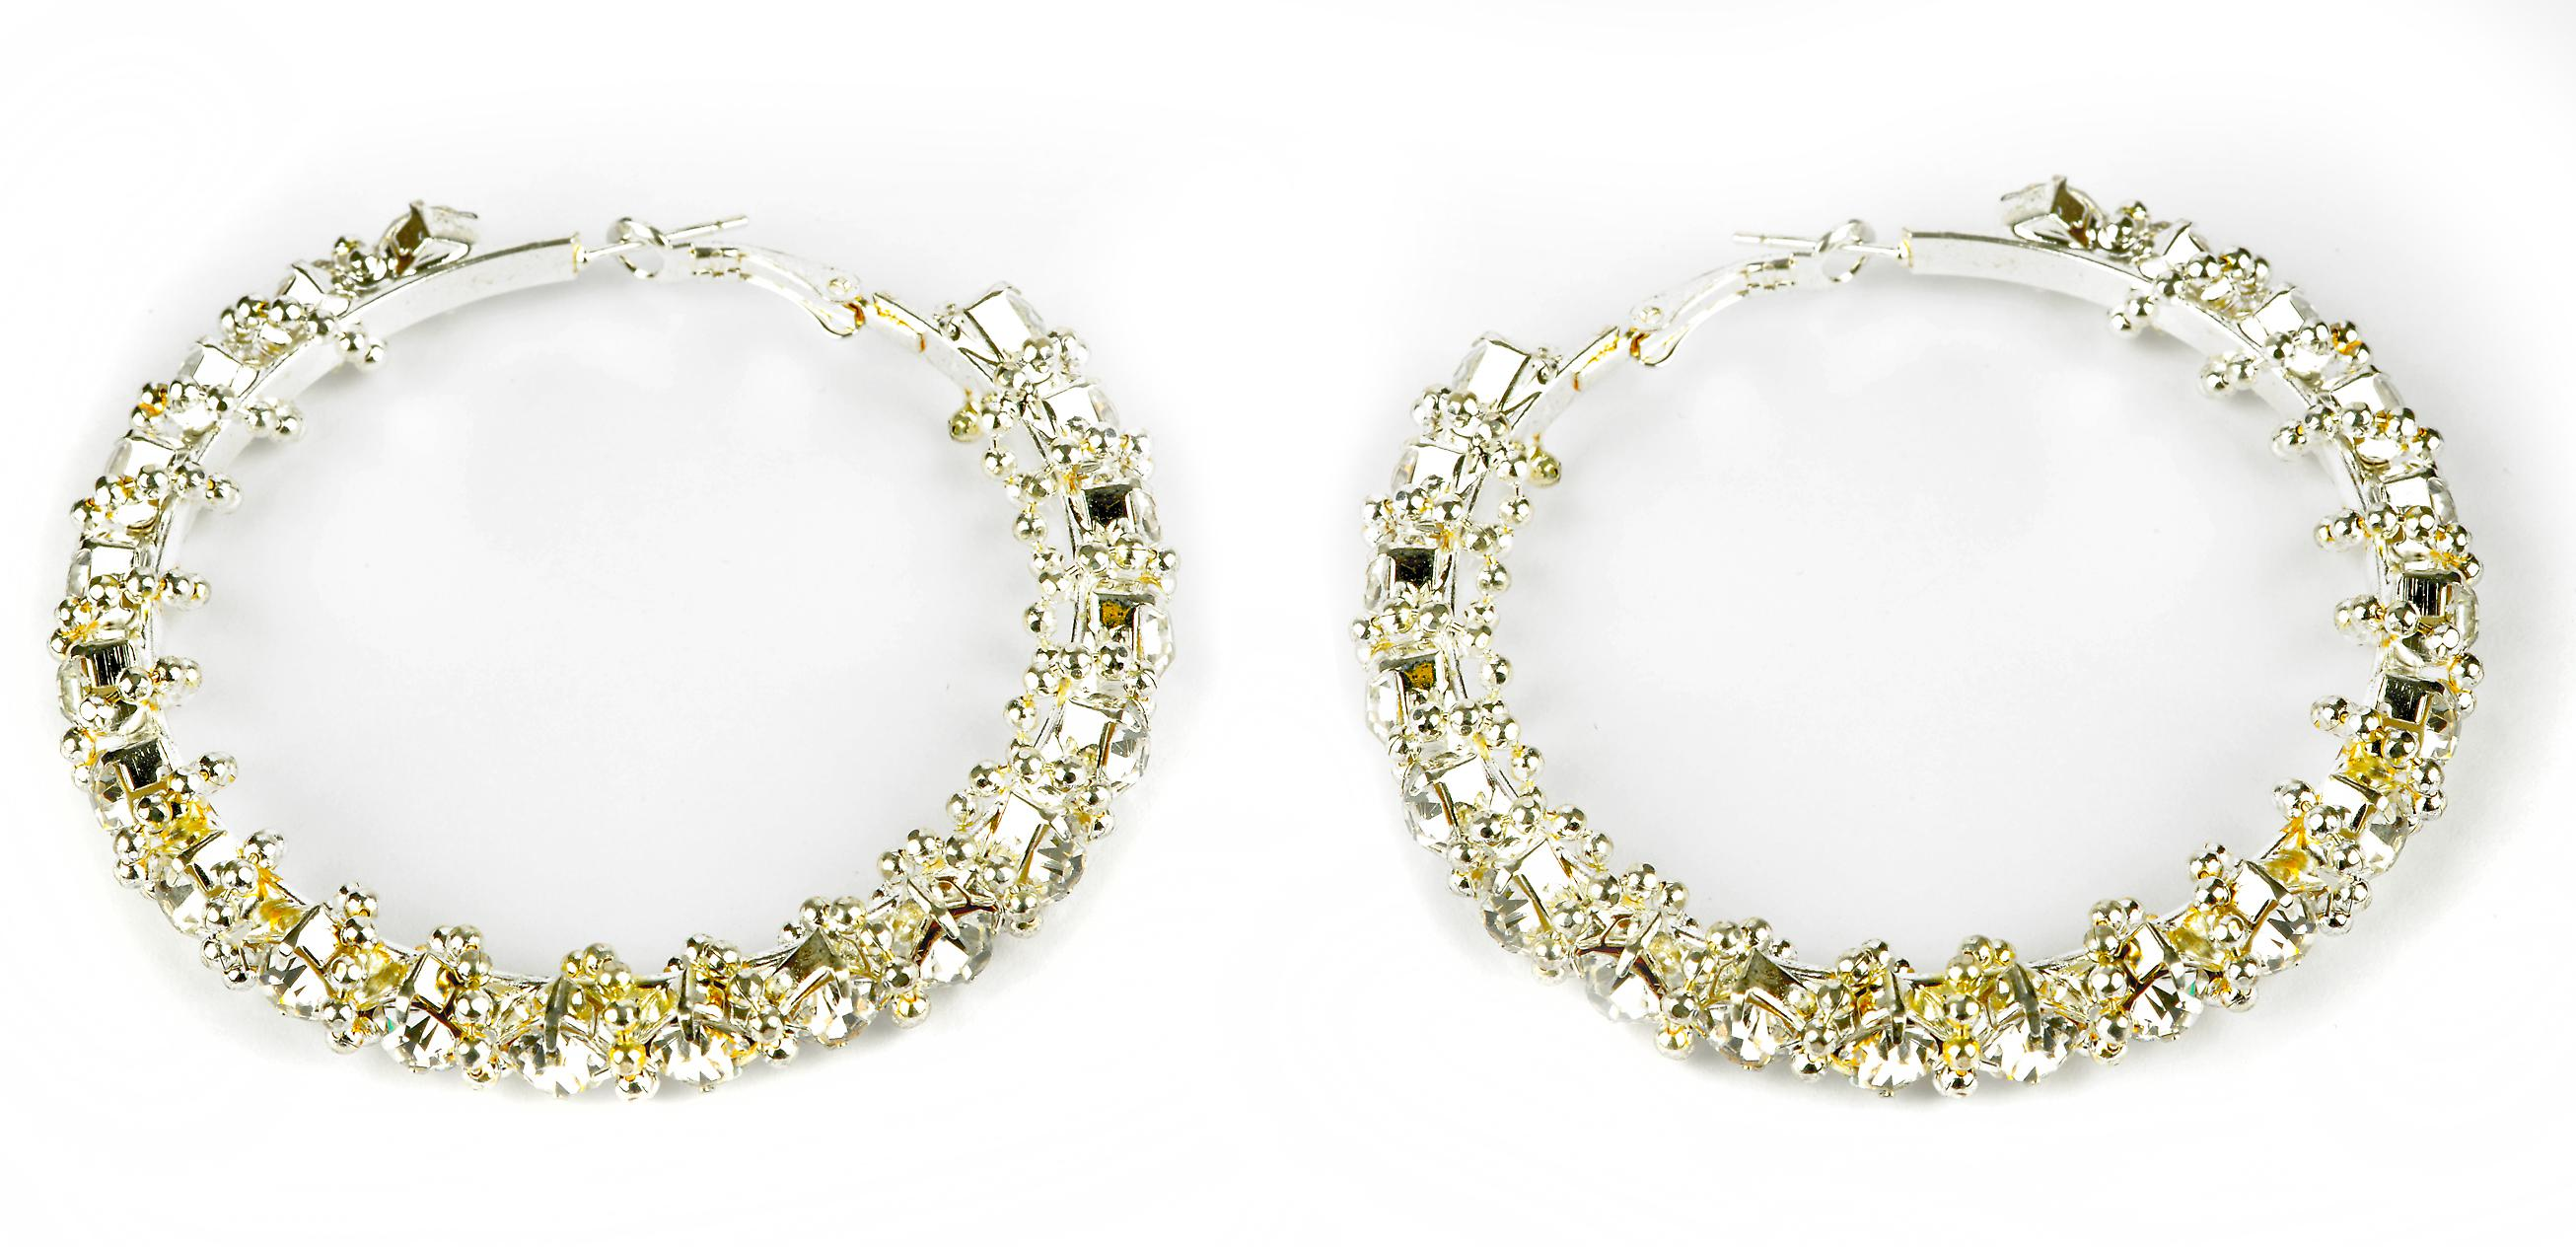 Waooh - Fashion Jewellery - WJ0723 - D'Oreille earrings with Swarovski Rhinestones Style Diamond - Frame Colour Silver